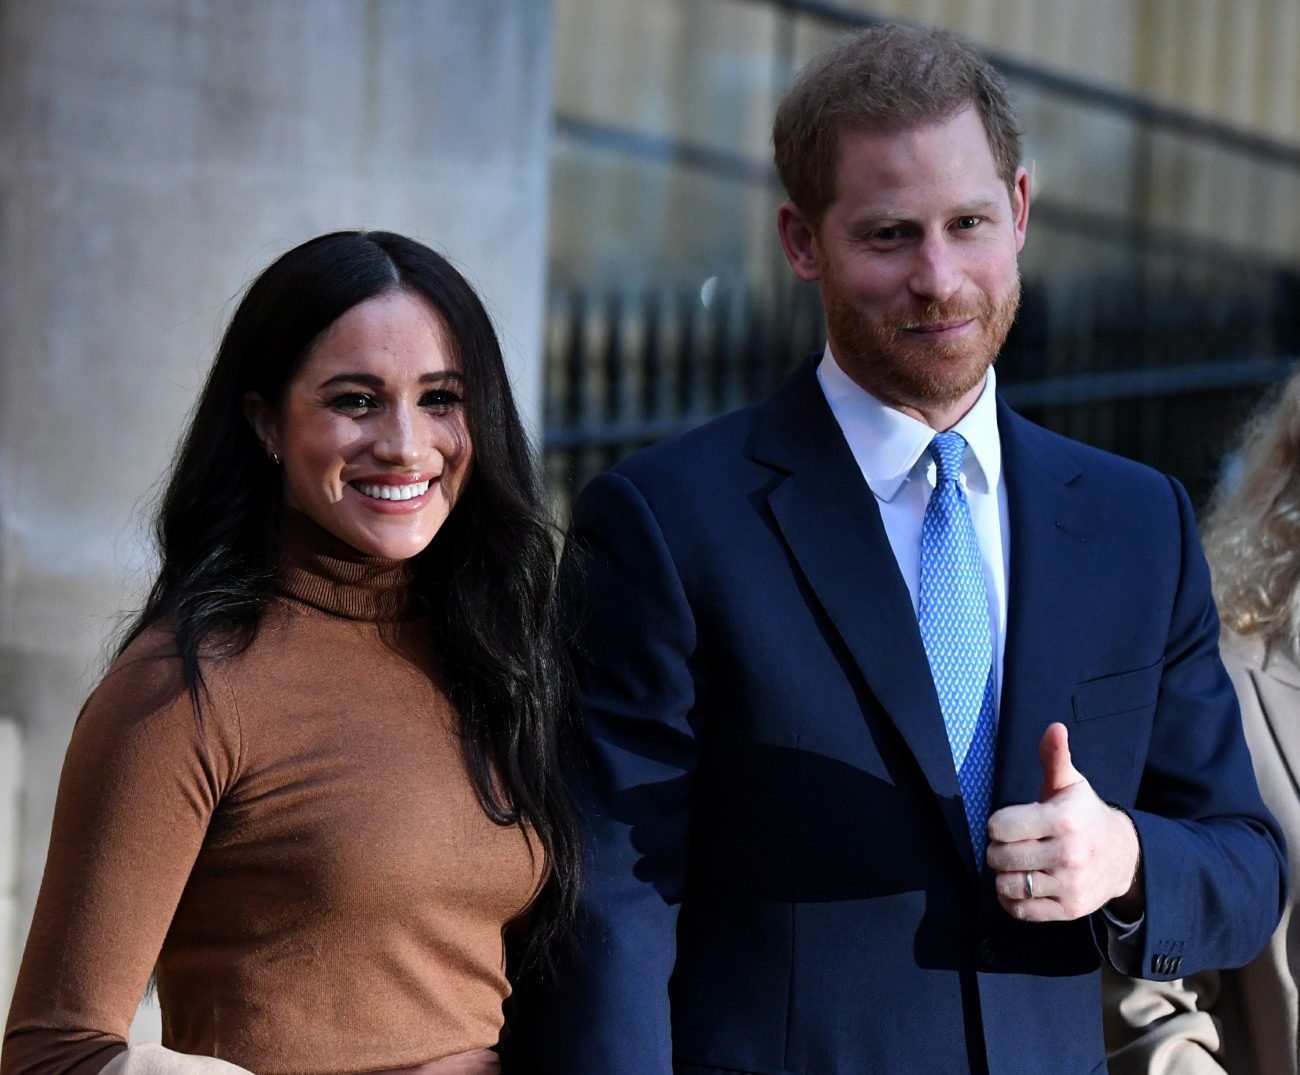 Britain's Prince Harry, Duke of Sussex (C) and Meghan, Duchess of Sussex (L) stand with Canada's High Commissioner for Canada in the United Kingdom, Janice Charette, as they leave after their visit to Canada House in thanks for the warm Canadian hospitalit